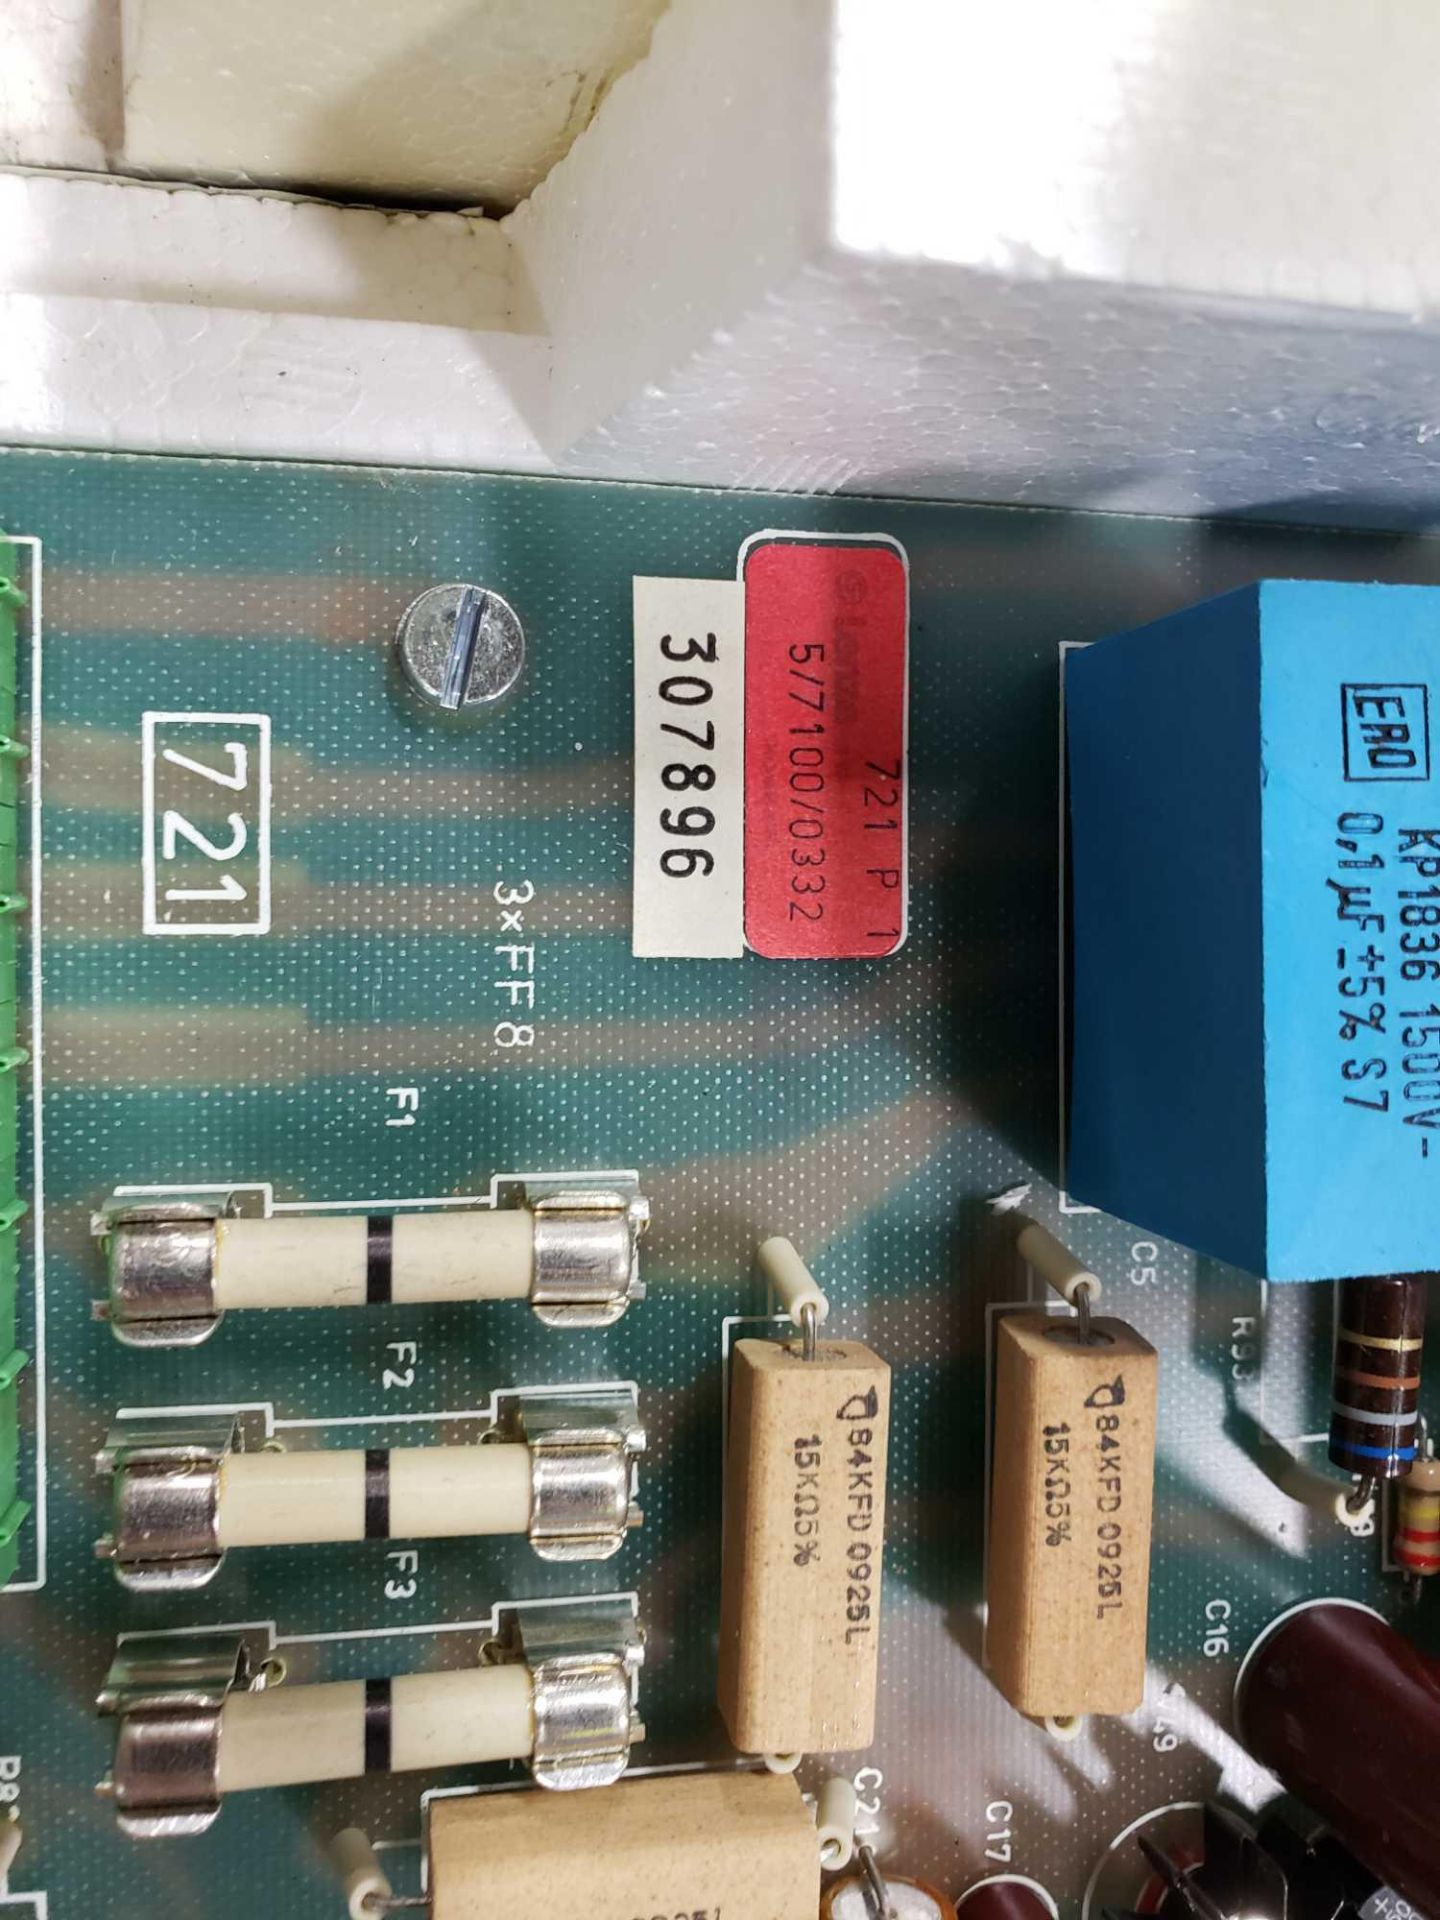 Lot 35 - Stahlkontor control model 721-E2. New as pictured.